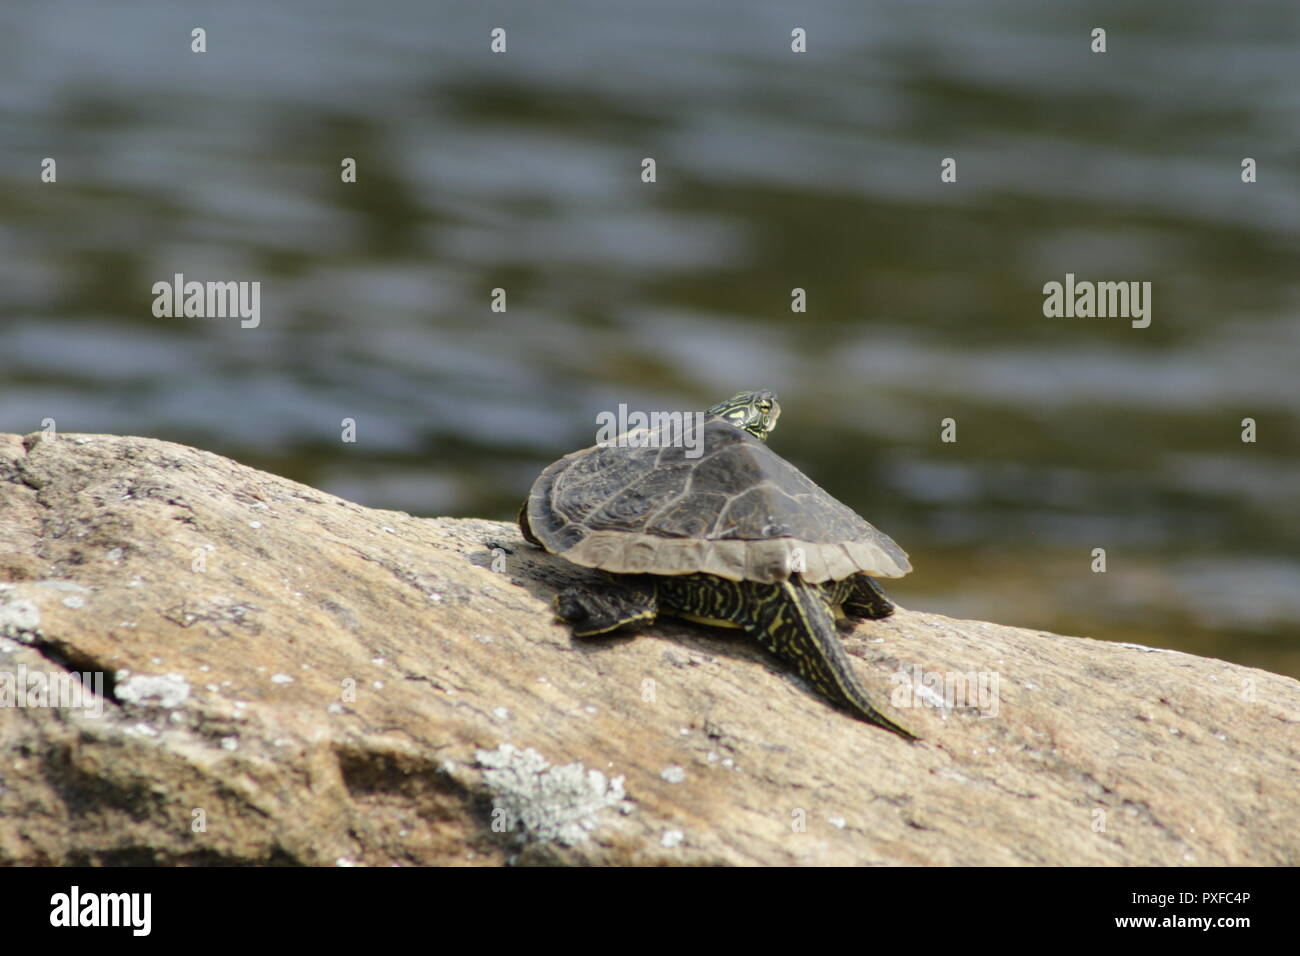 Northern Map Turtle listed as special concern in the species at risk act in Canada. - Stock Image